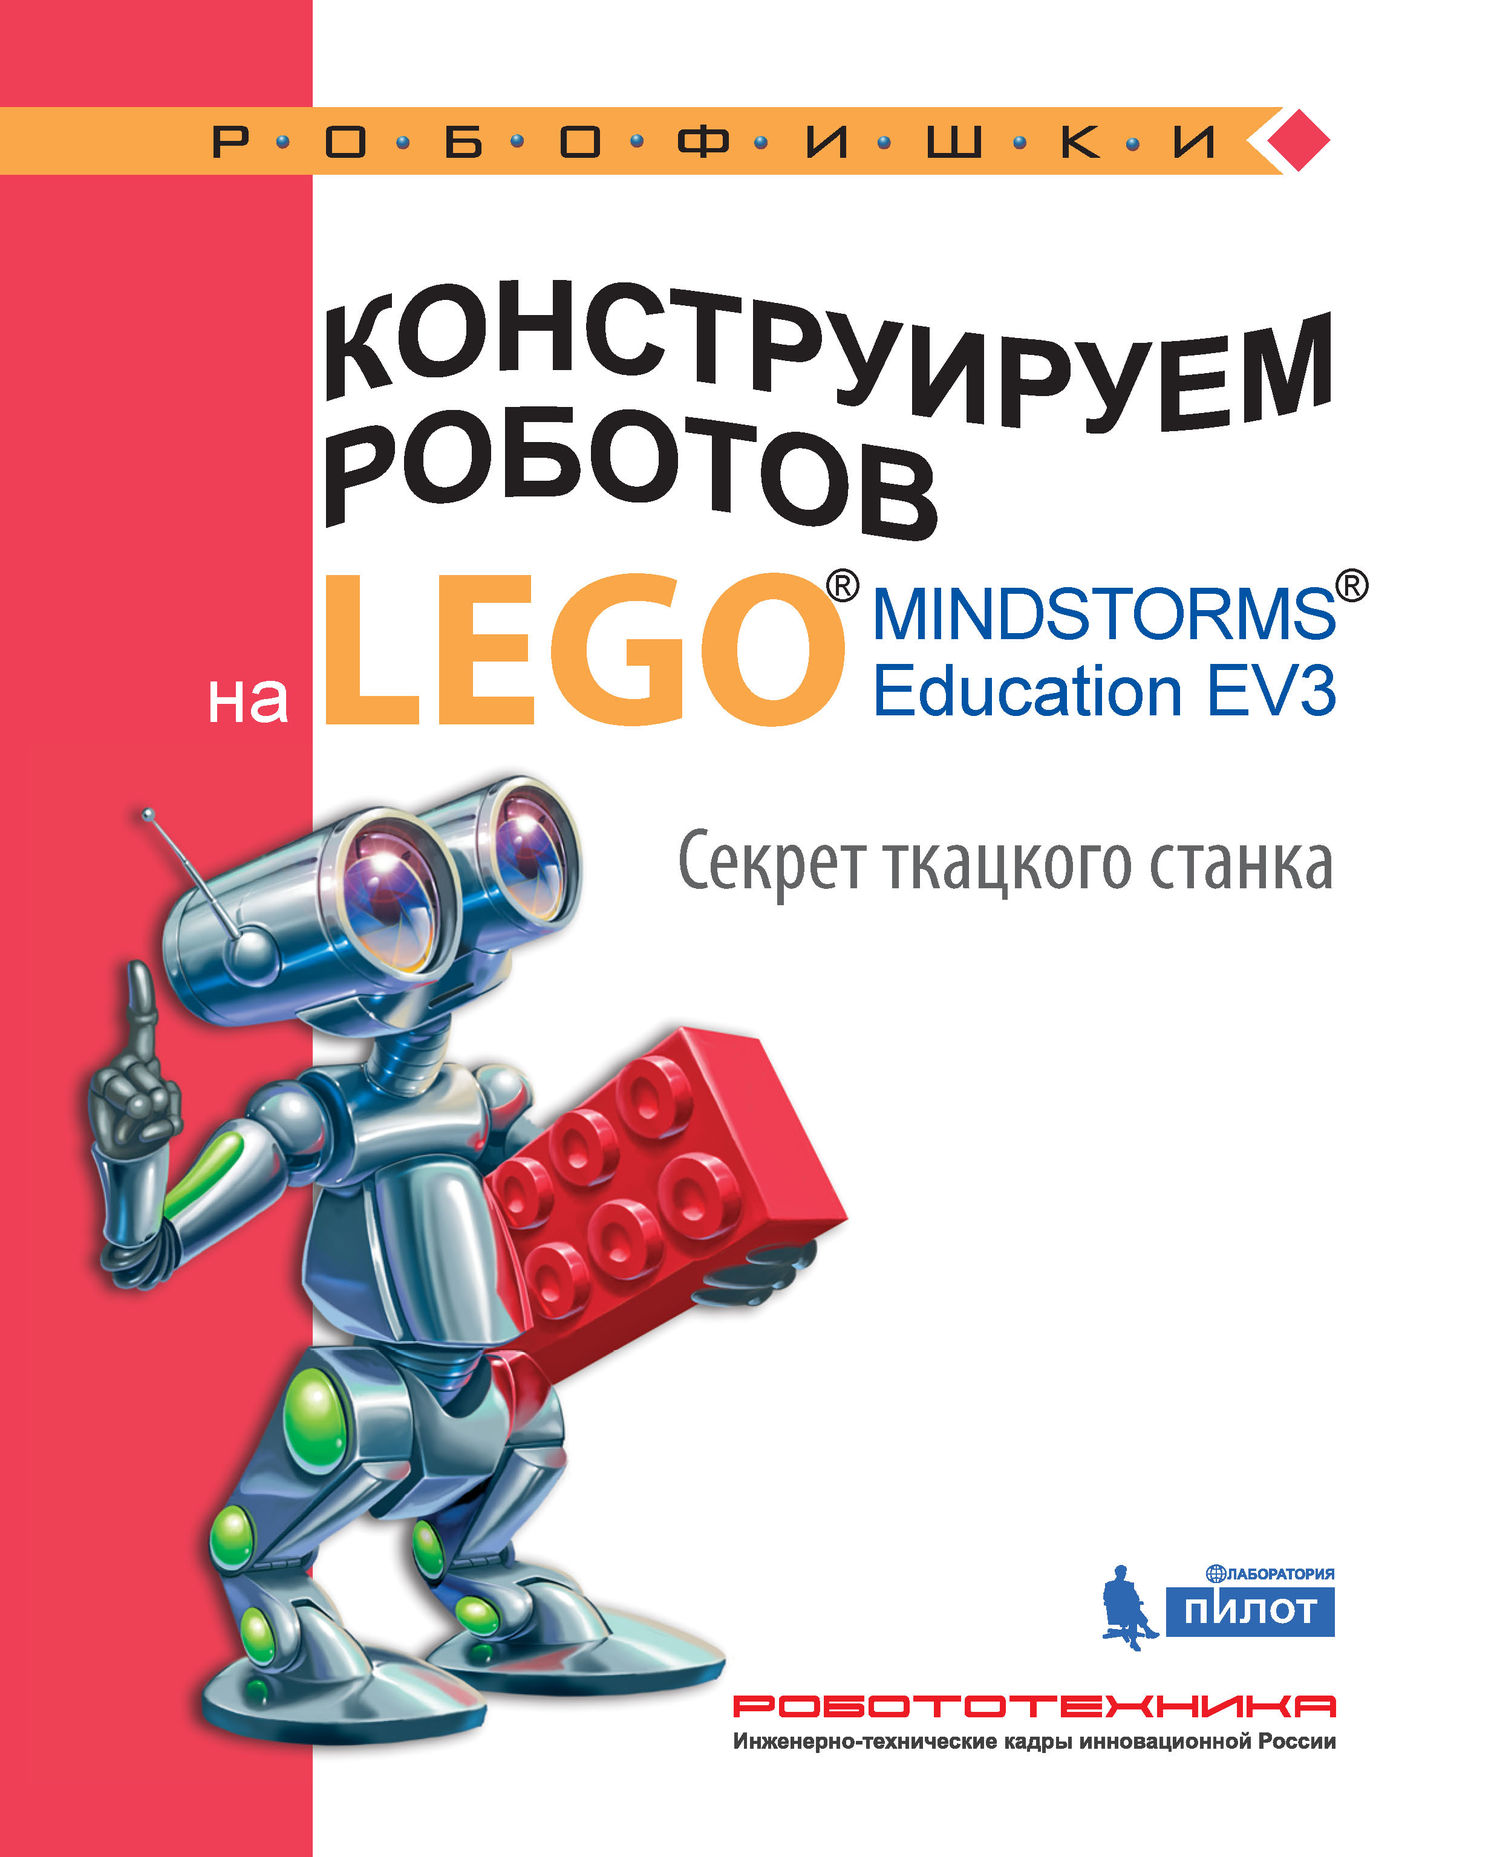 Марина Стерхова Конструируем роботов на LEGO MINDSTORMS Education EV3. Секрет ткацкого станка тарапата в конструируем роботов на lego® mindstorms® education ev3 секрет ткацкого станка isbn 9785906828941